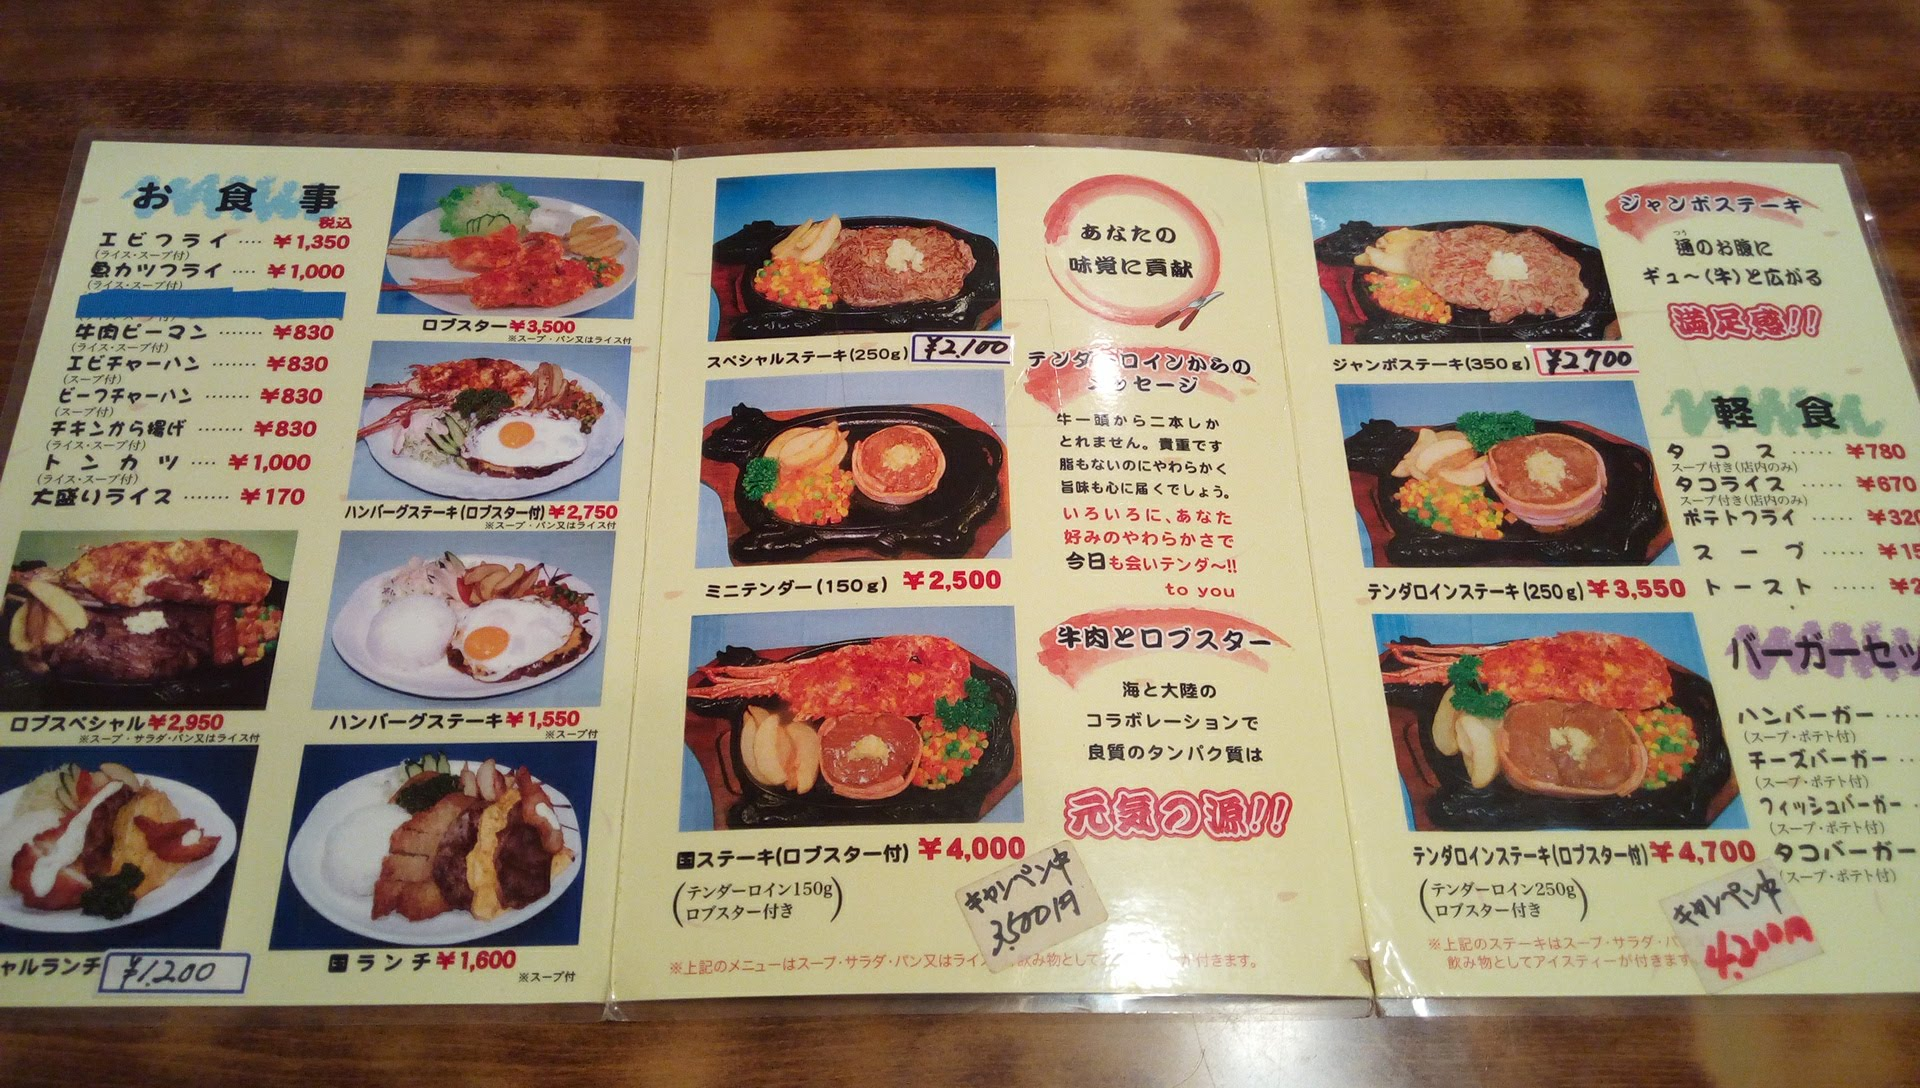 The menu of the restaurant Kuni